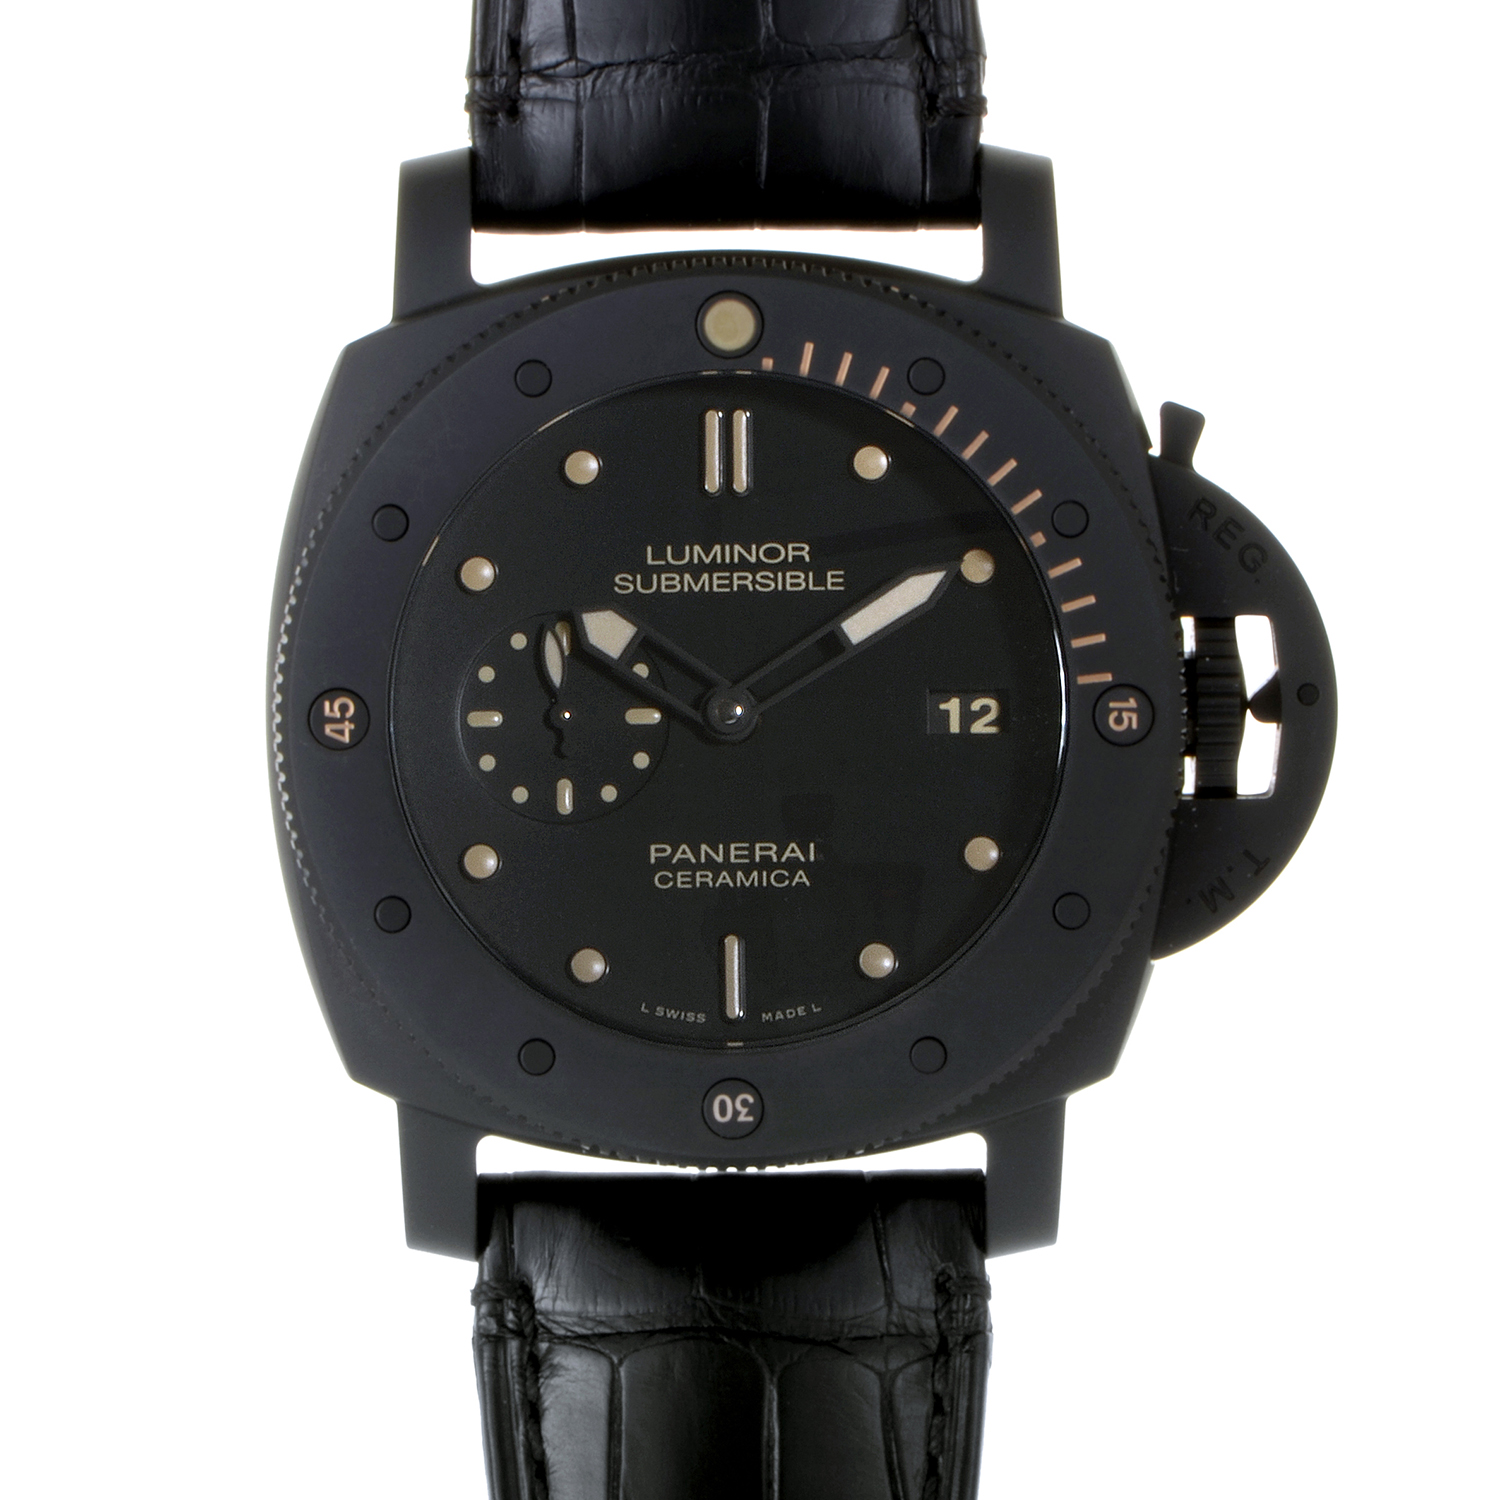 Luminor Submersible 1950 3 Days Automatic Ceramica PAM00508